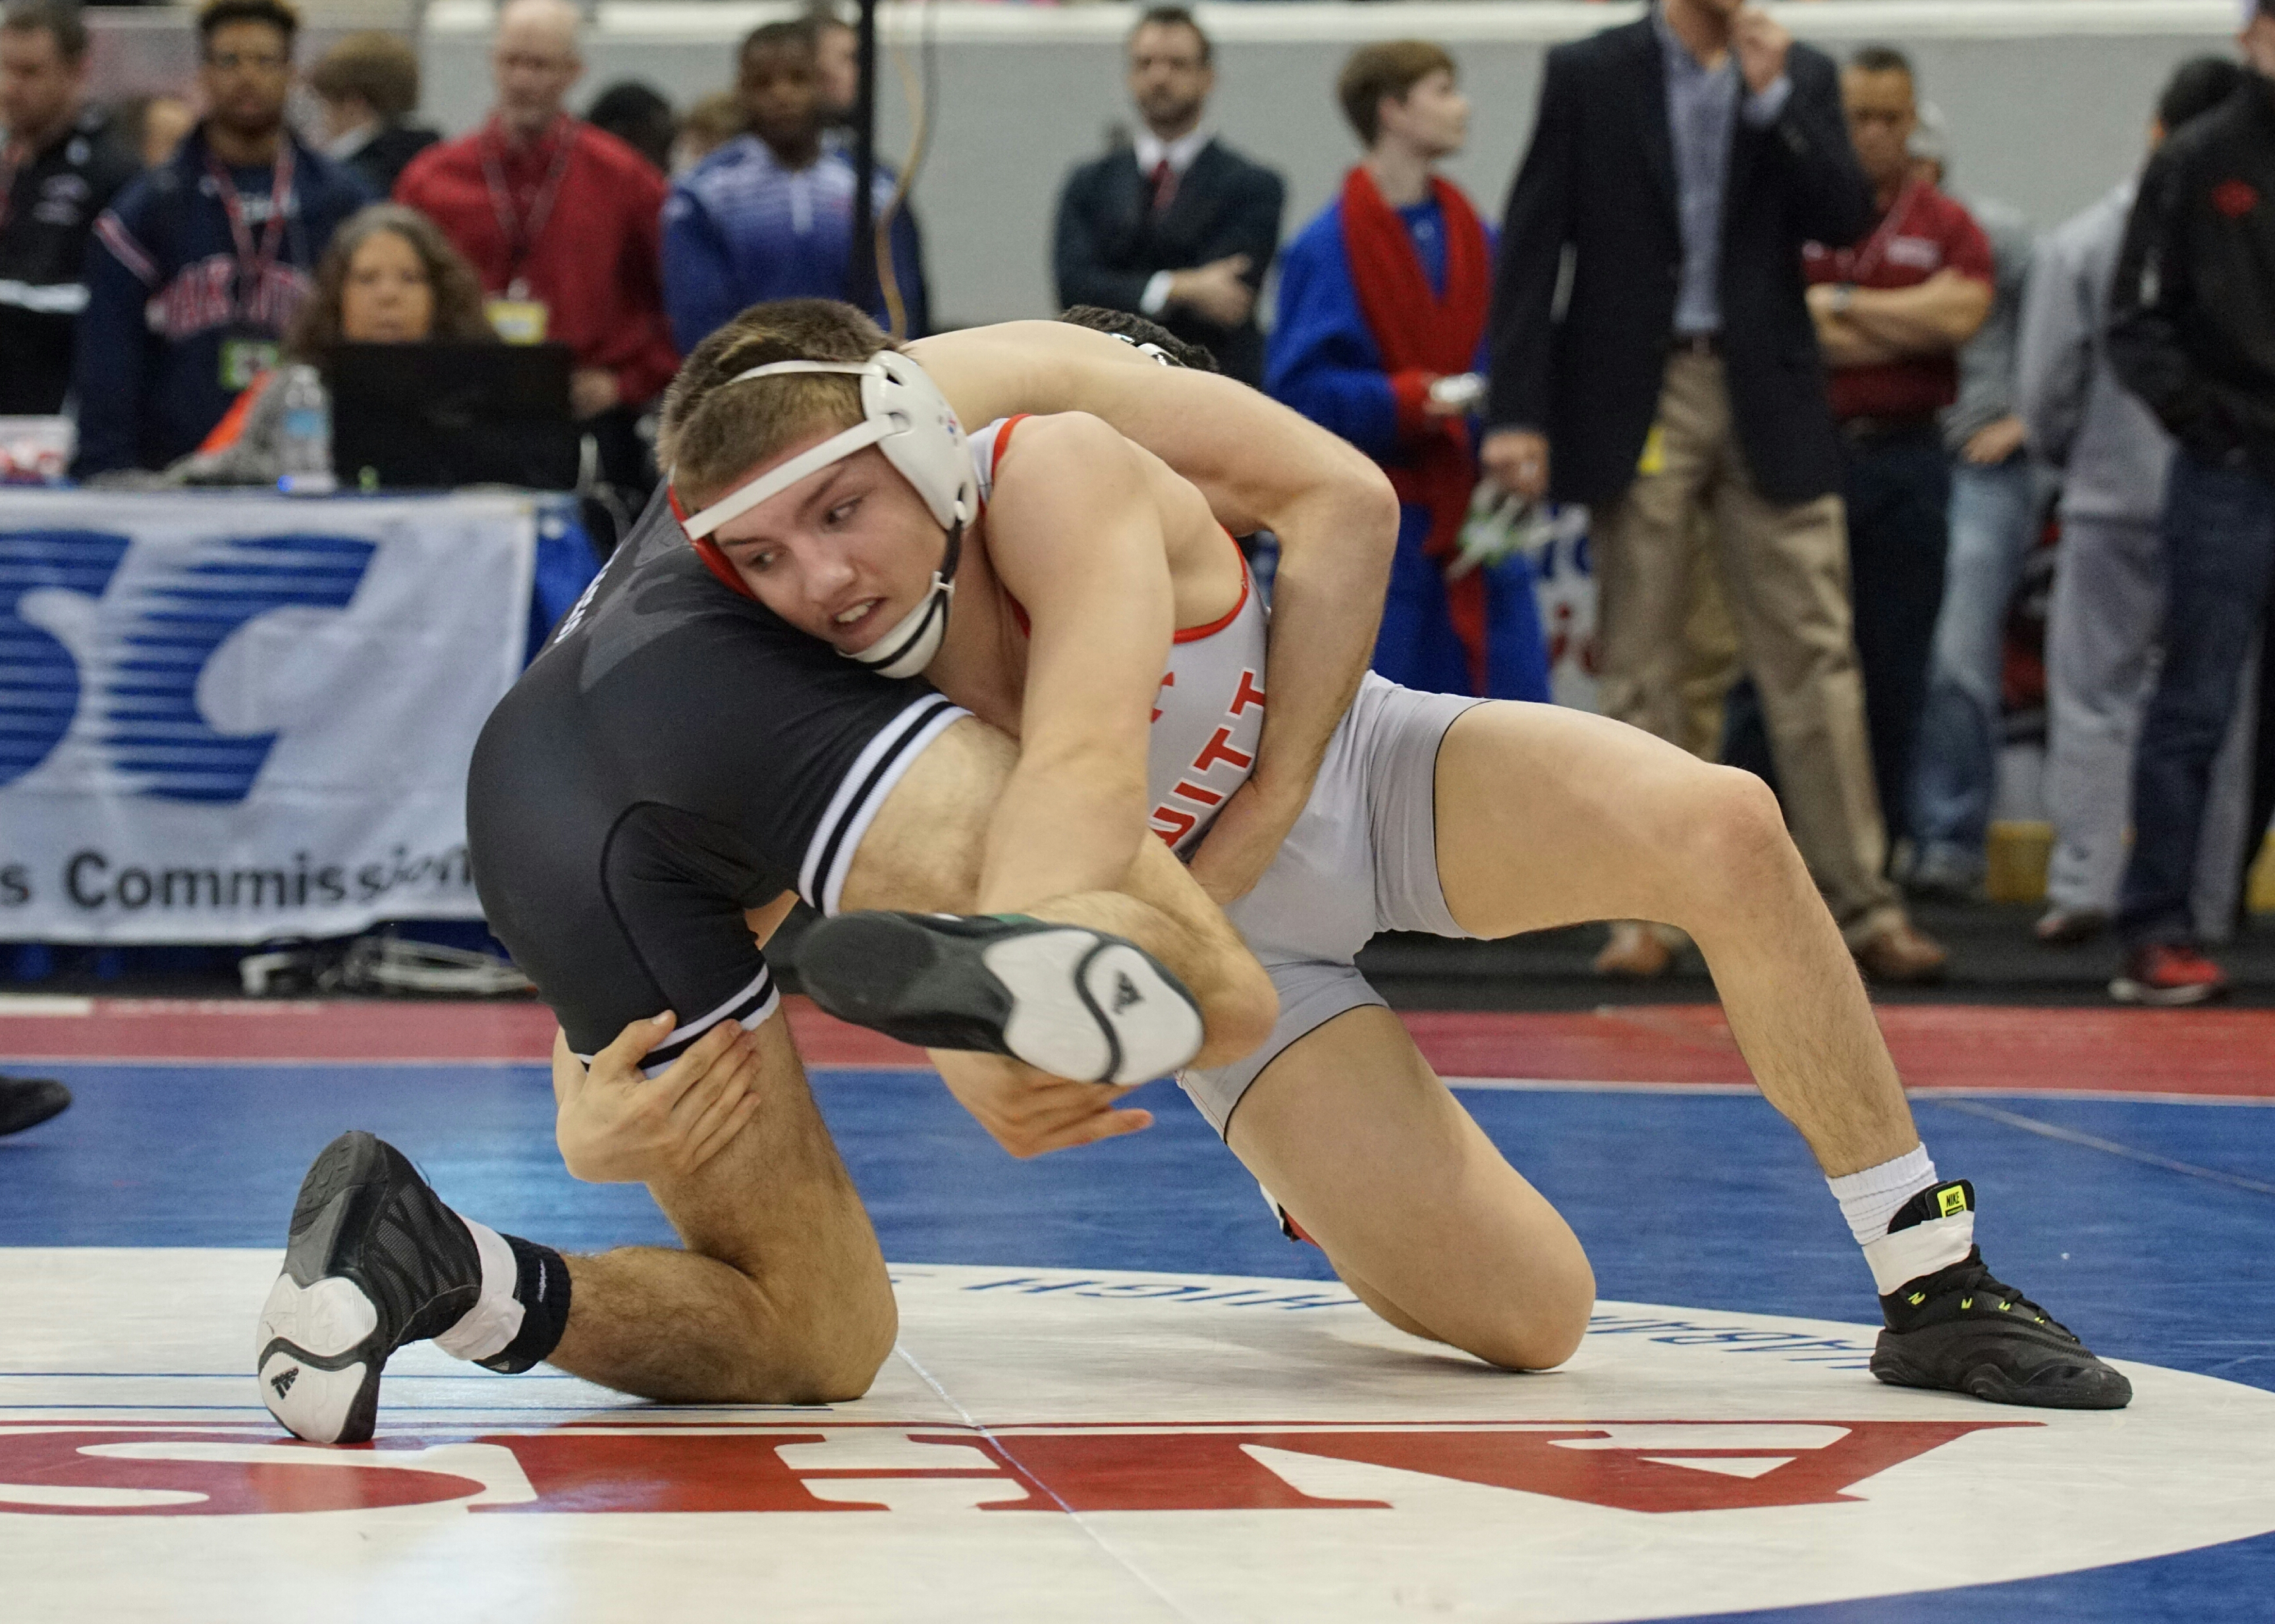 Led by Bob Jones' sectional title, local wrestlers headed to state